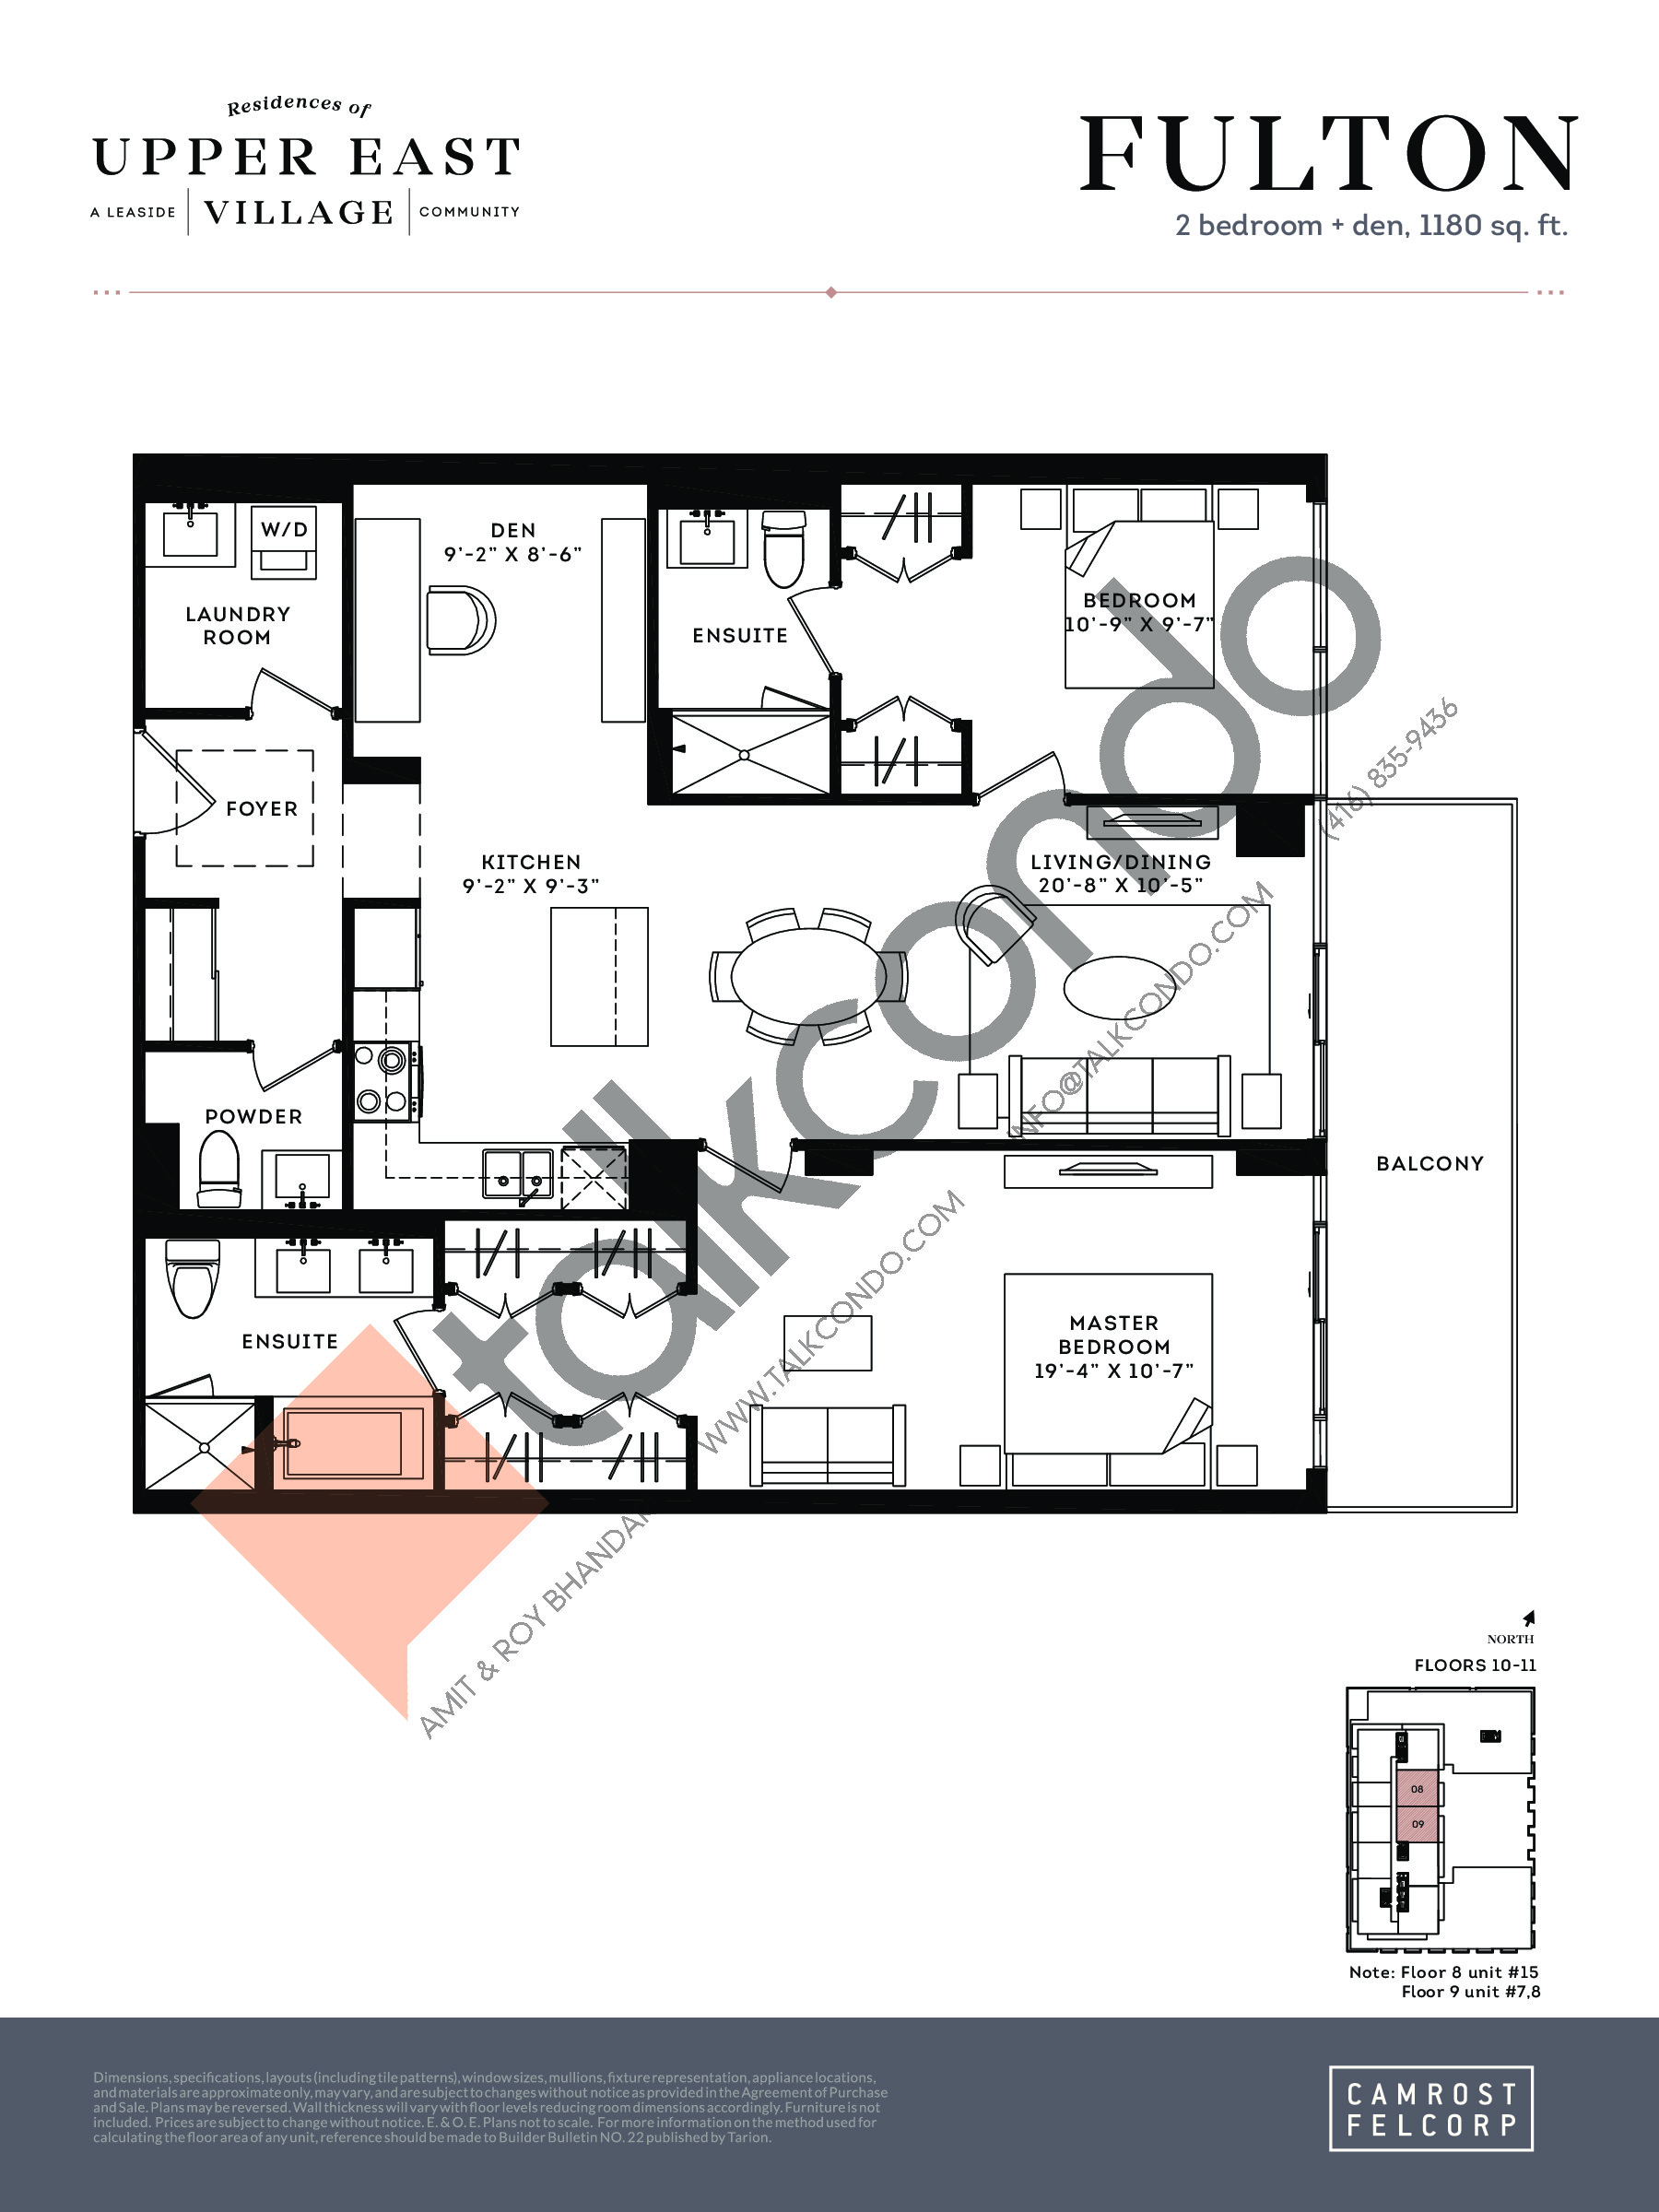 Fulton (Signature Collection) Floor Plan at Upper East Village Condos - 1180 sq.ft